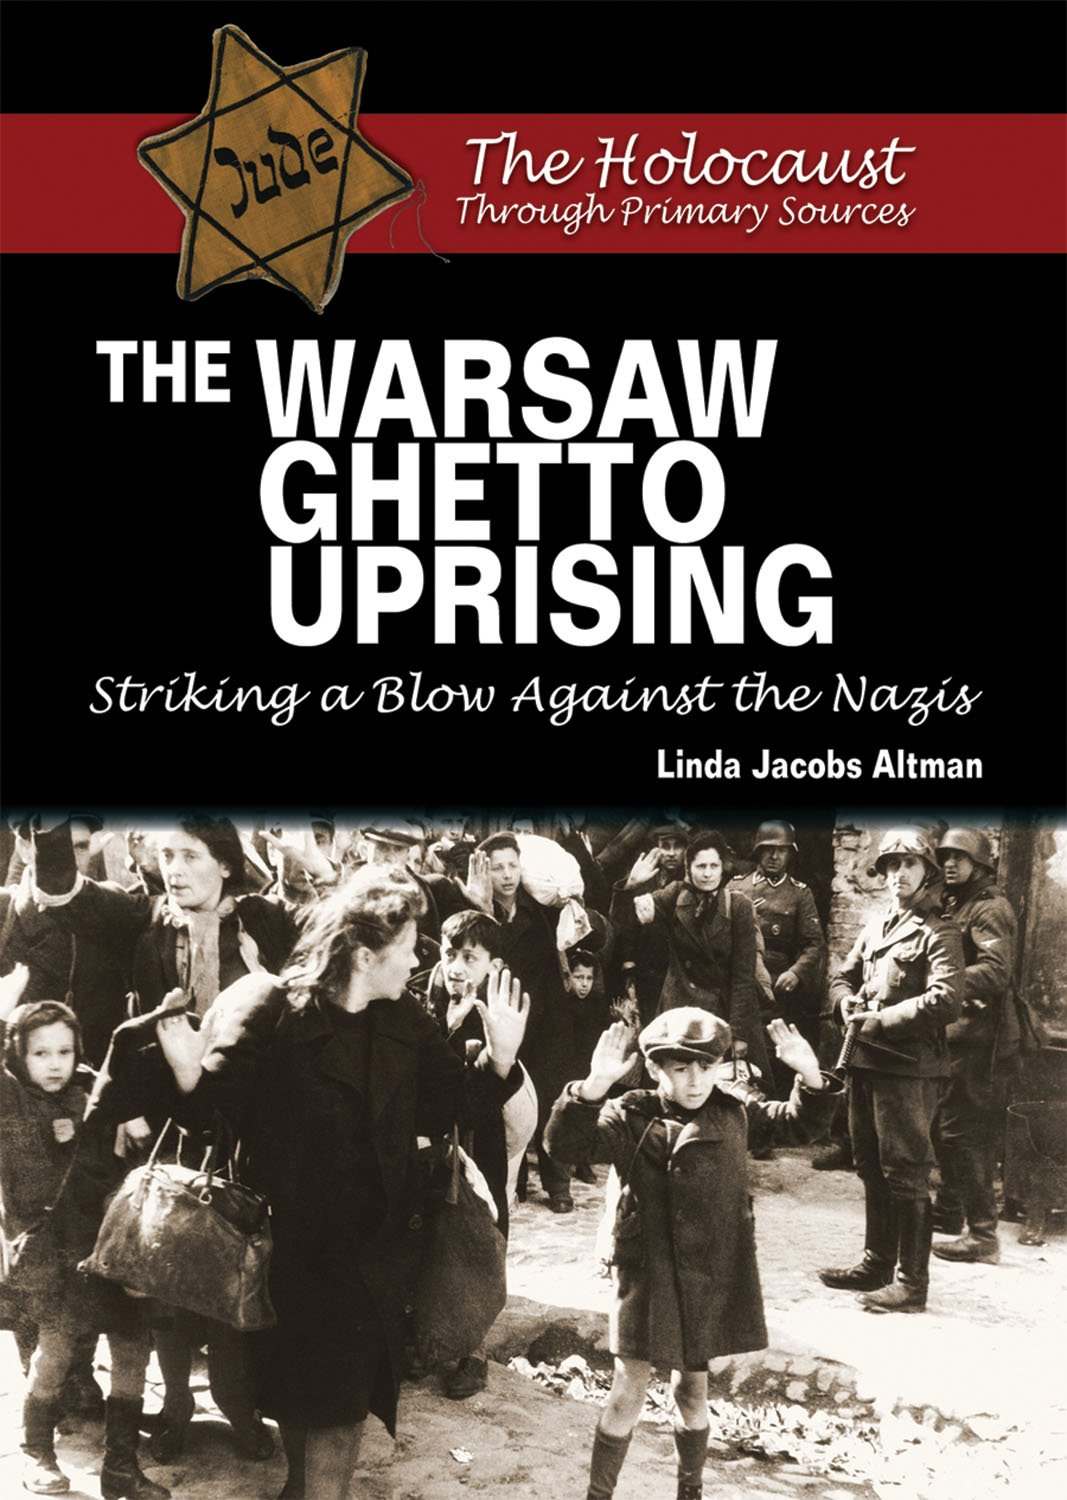 Amazon.com: The Warsaw Ghetto Uprising: Striking a Blow Against the ...